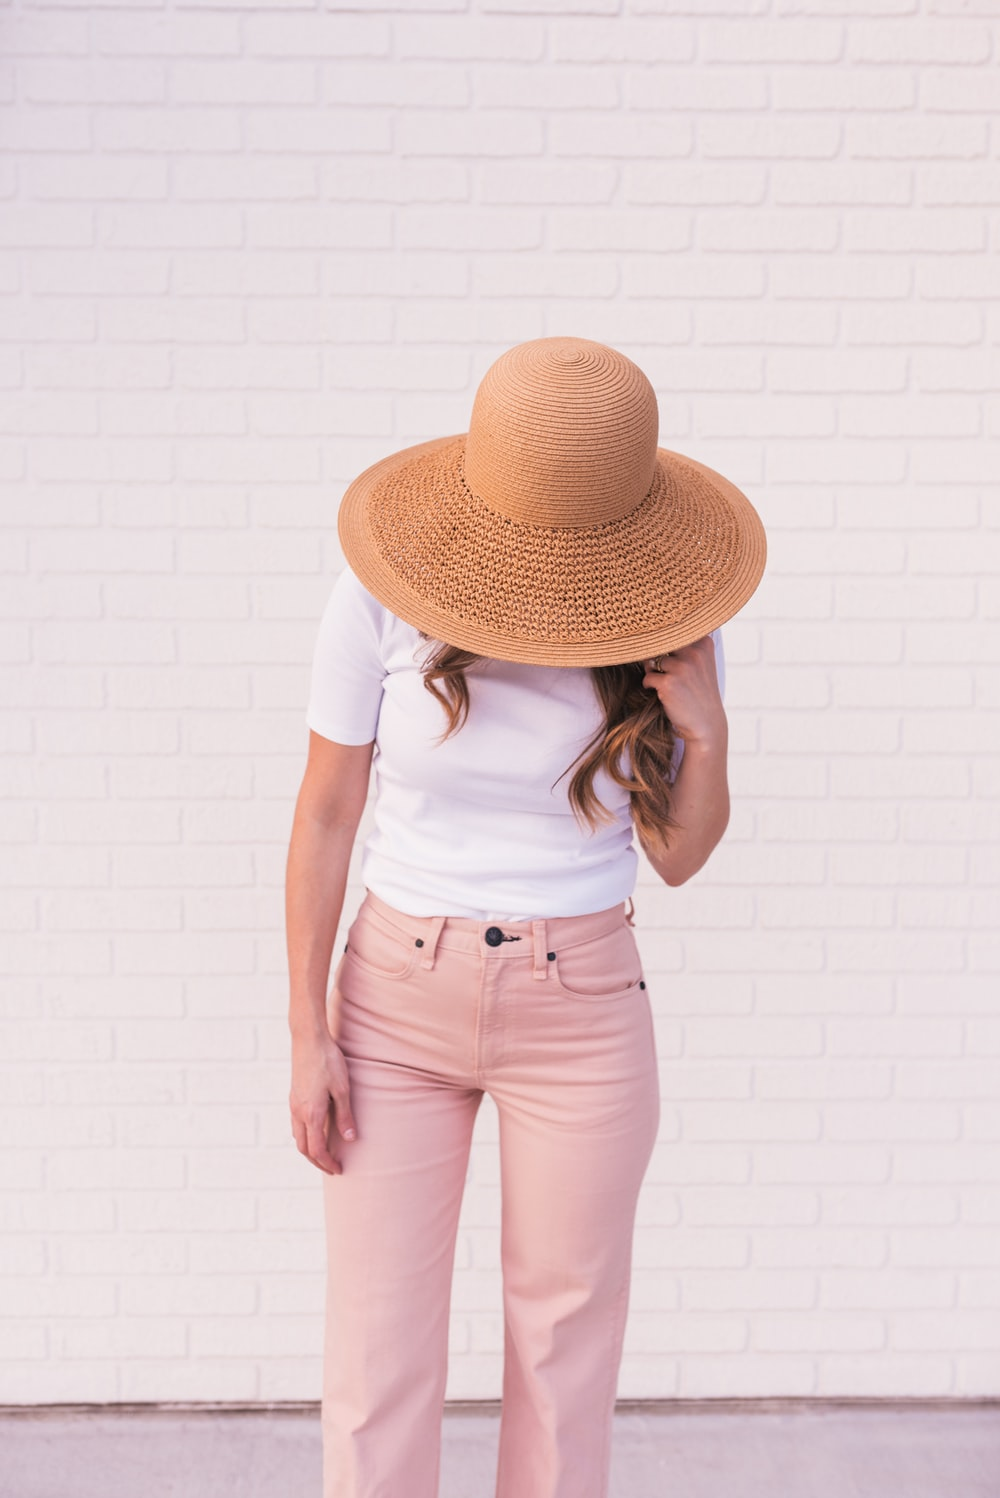 woman wearing white shirt, pink pants, and brown sun hat